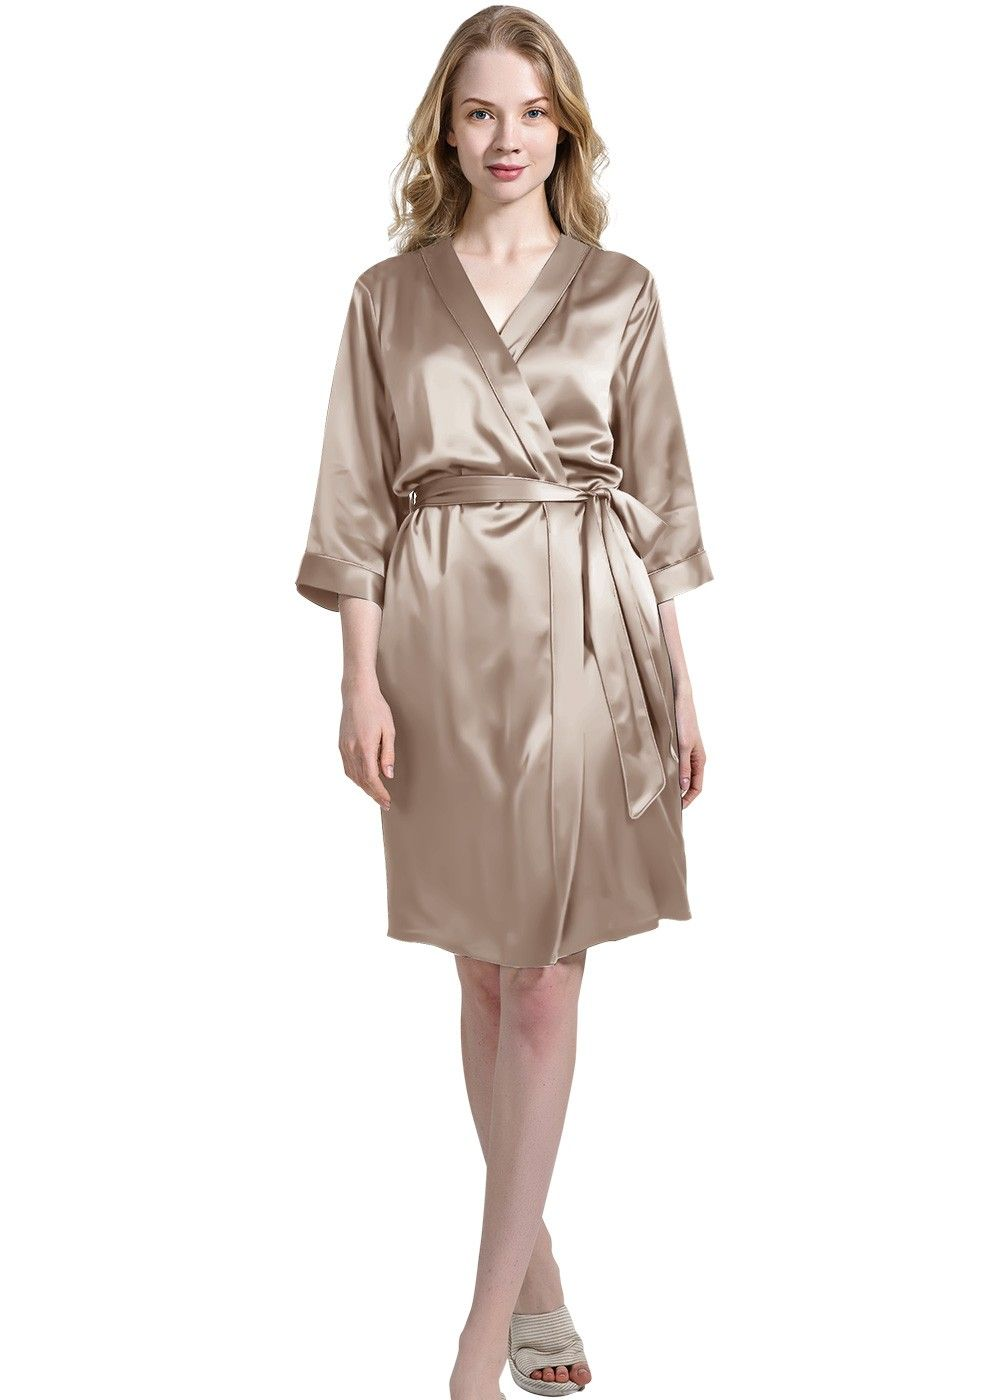 Womens 100% Silk Robe Skin-Care Dressing Gown - OOSilk d054a4faf5